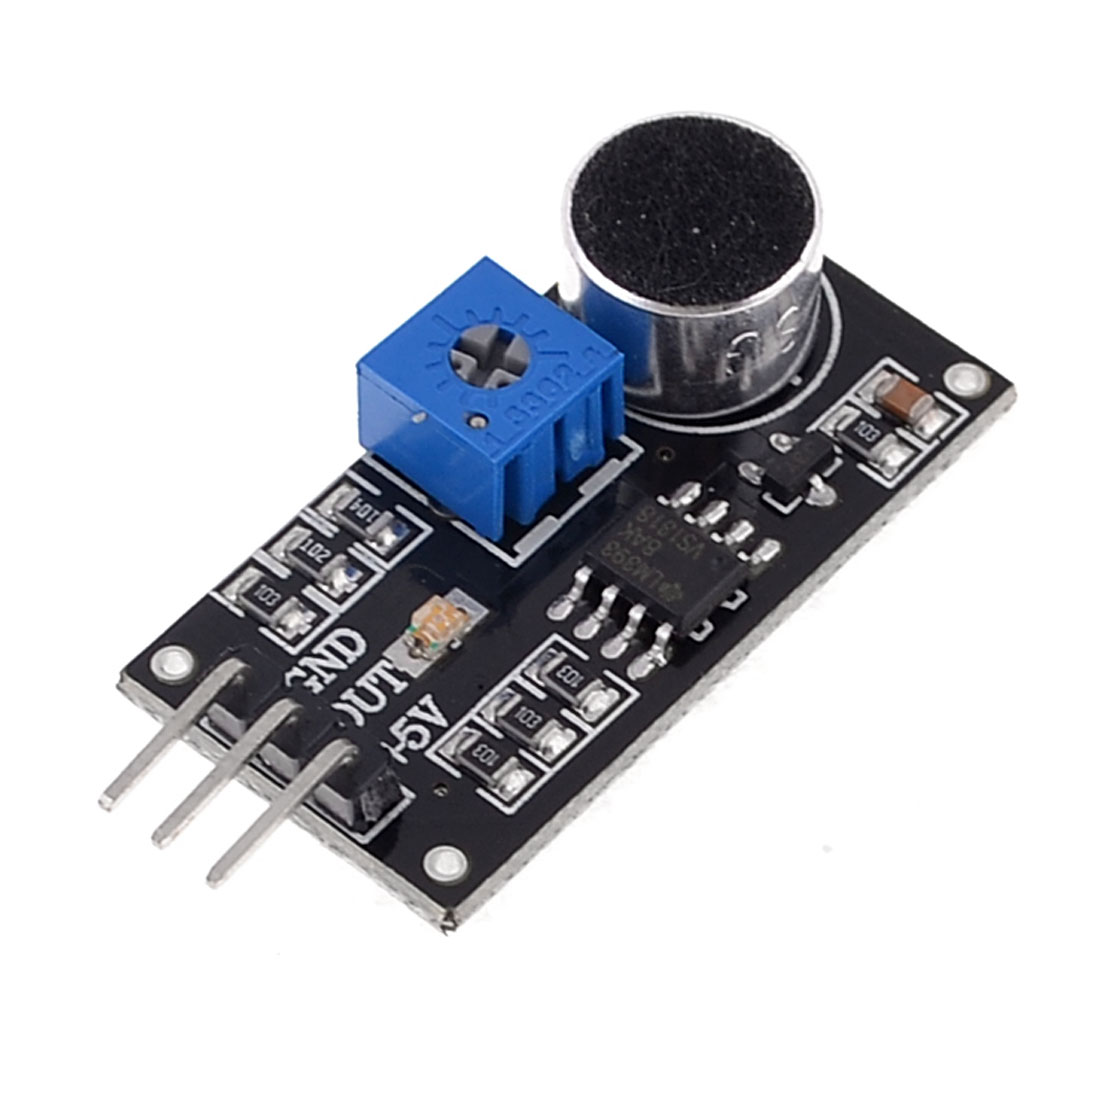 LM393 Sound Detection Sensor Module DC4-6V Black